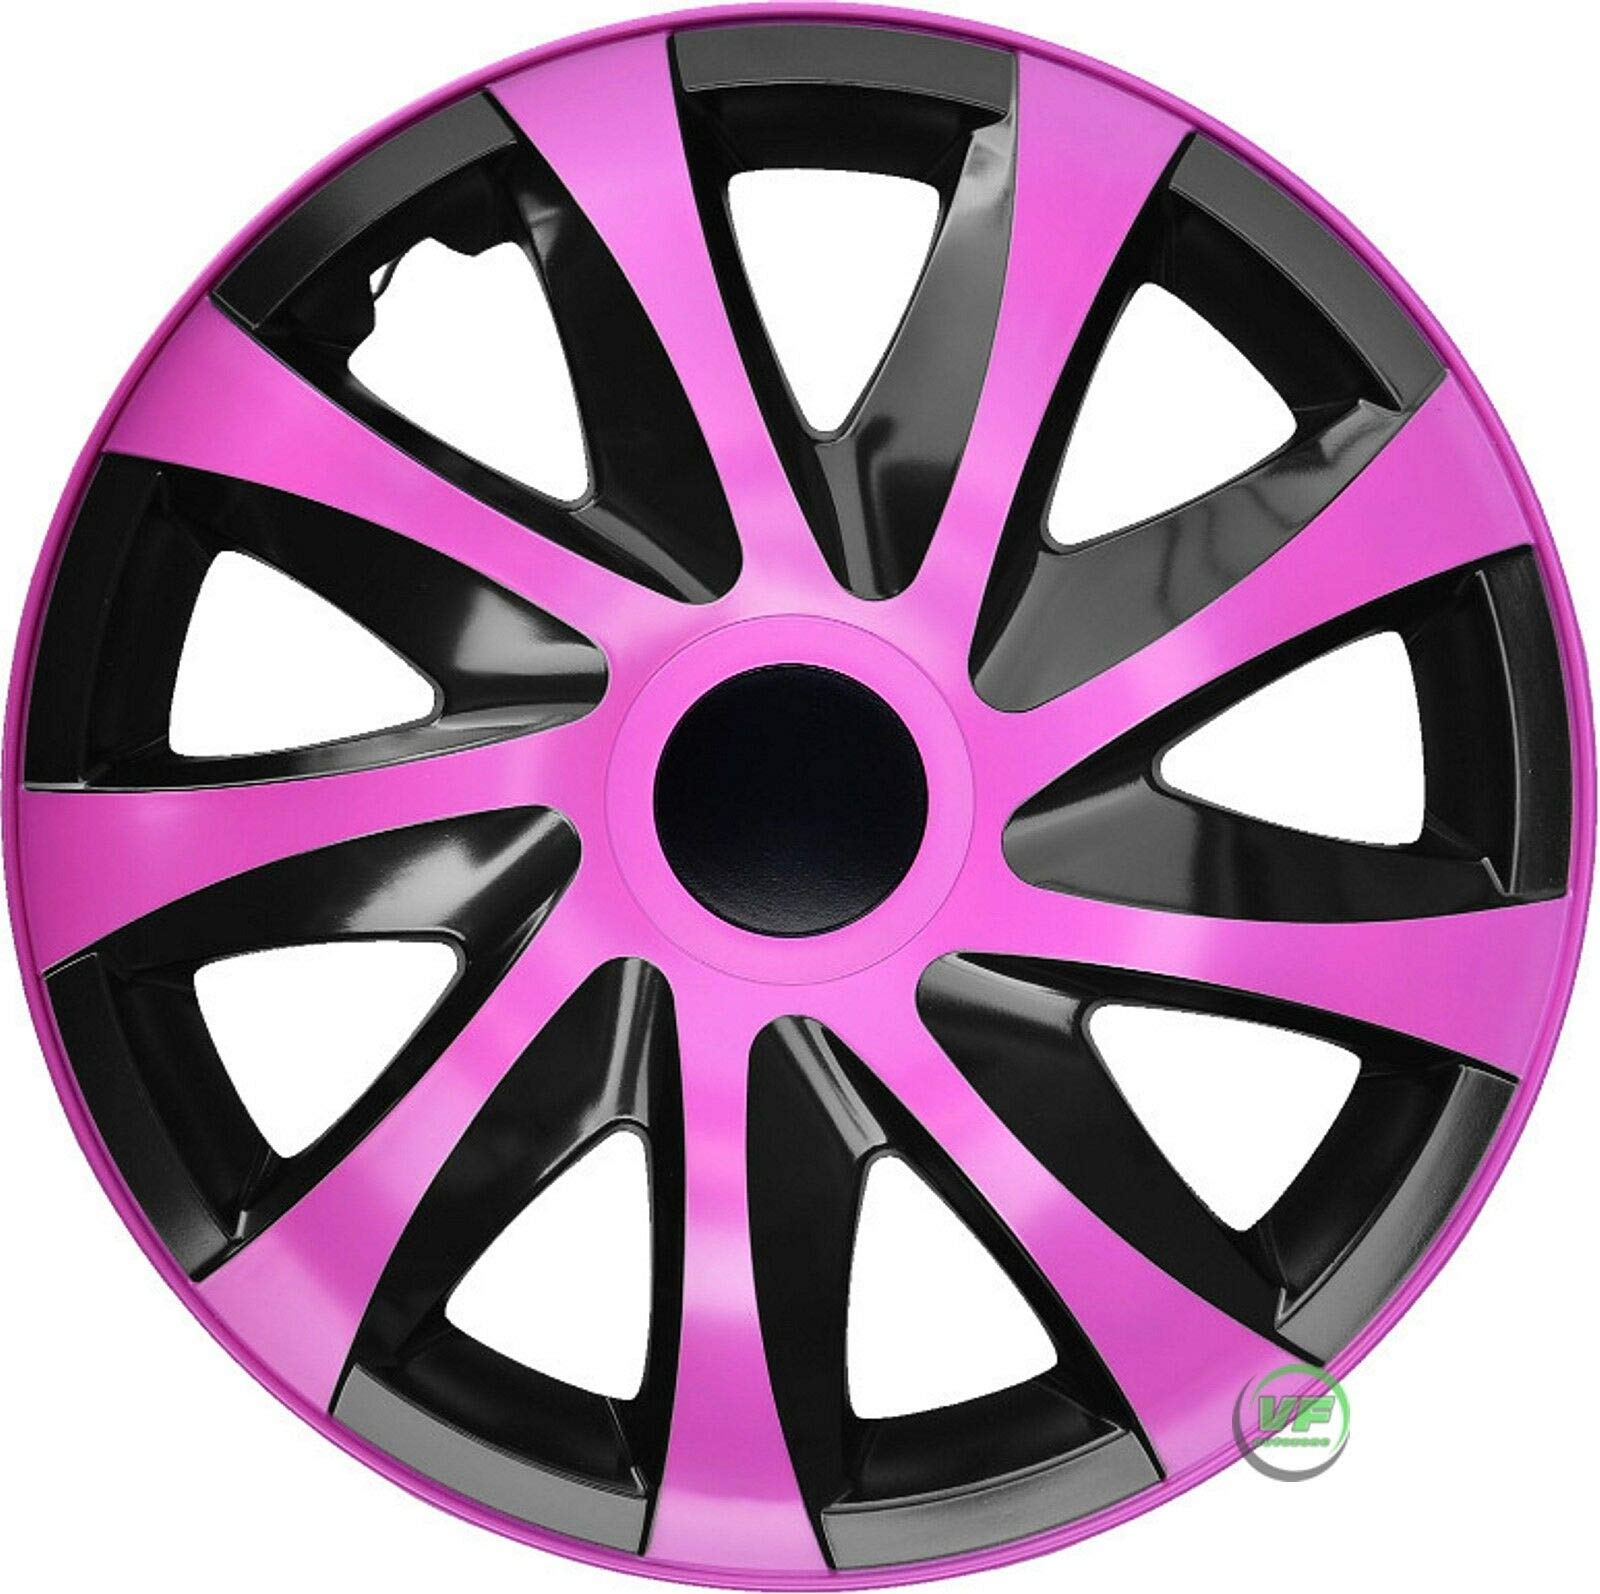 "J&J AUTOMOTIVE WT783 14"" RADKAPPEN RADZIERBLENDEN 4er Set 14 Zoll PINK-SCHWARZ Draco CS von J&J AUTOMOTIVE"